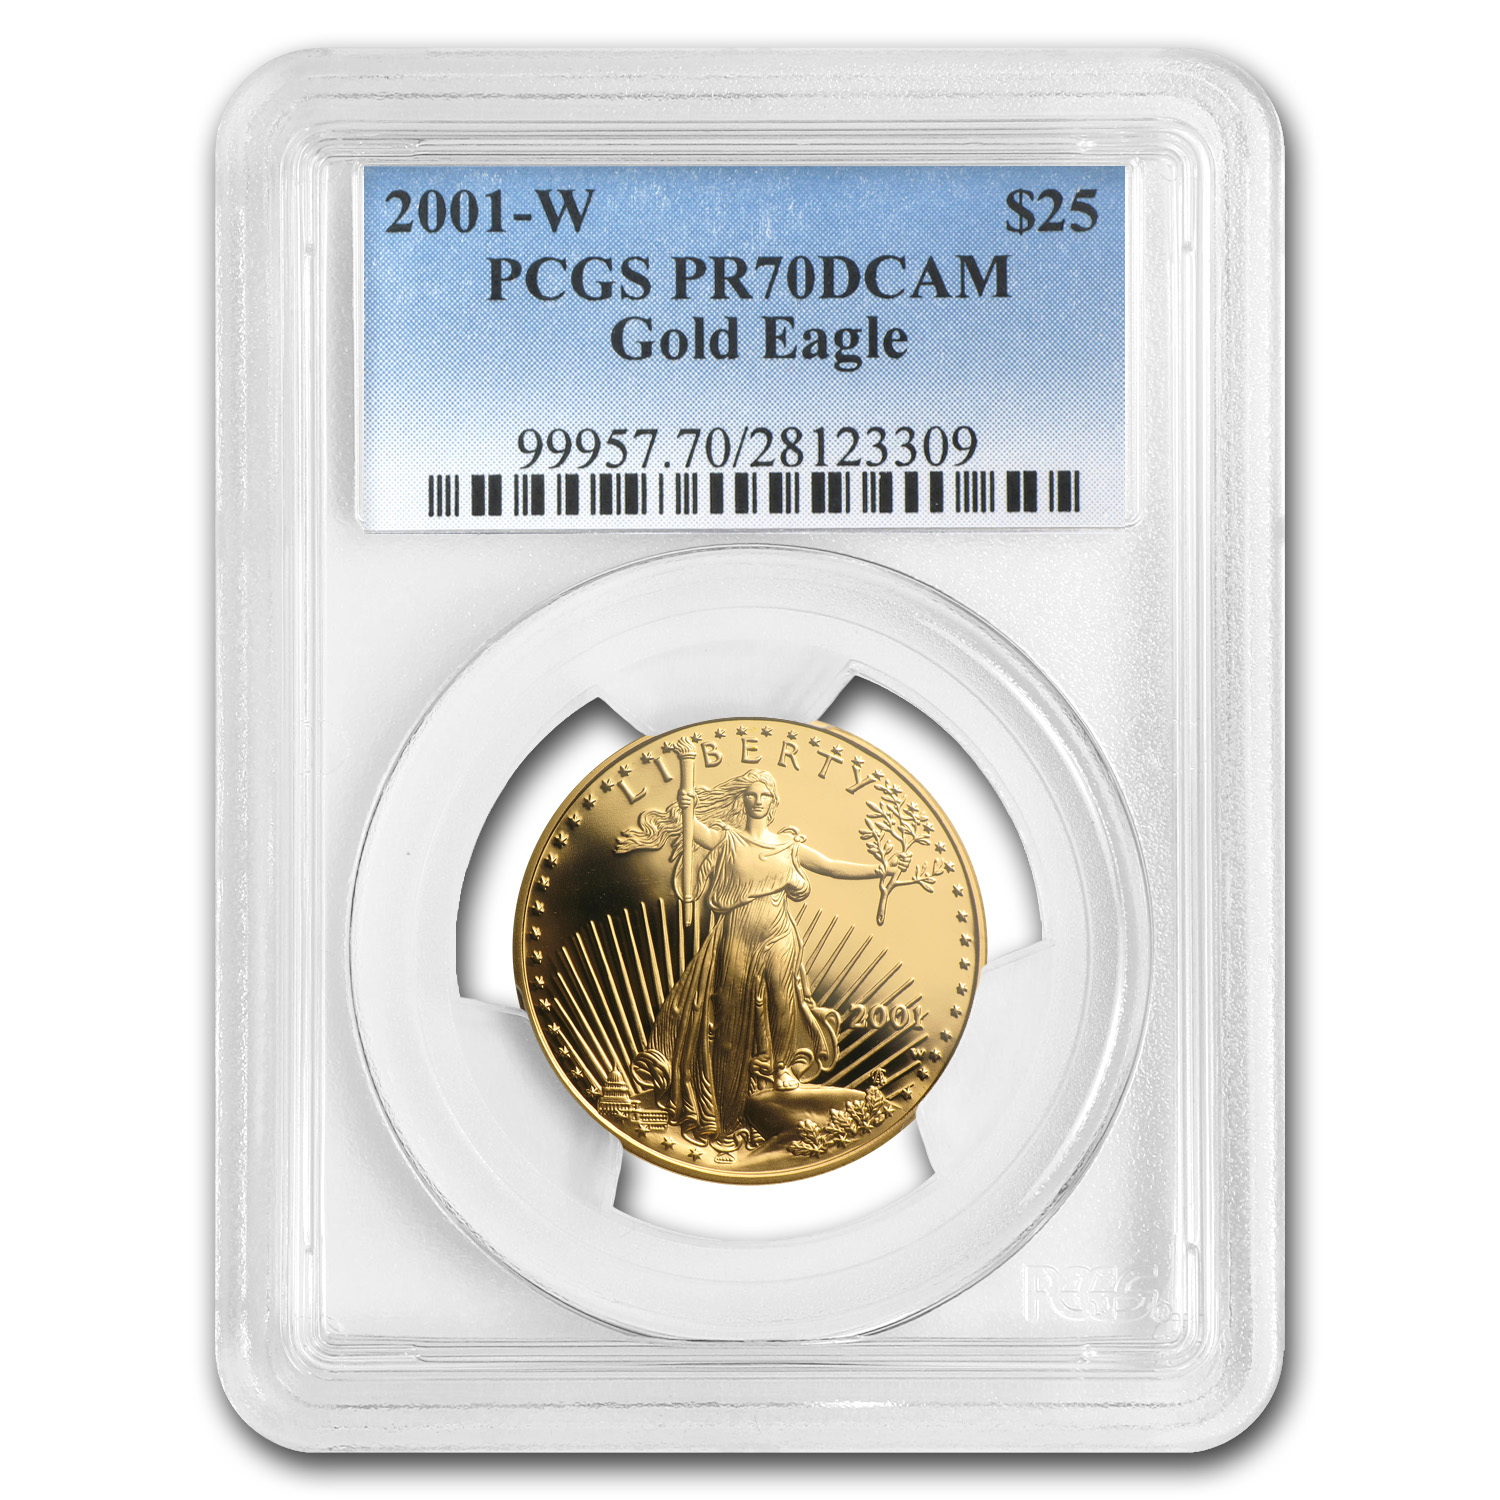 2001-W 1/2 oz Proof Gold American Eagle PR-70 PCGS